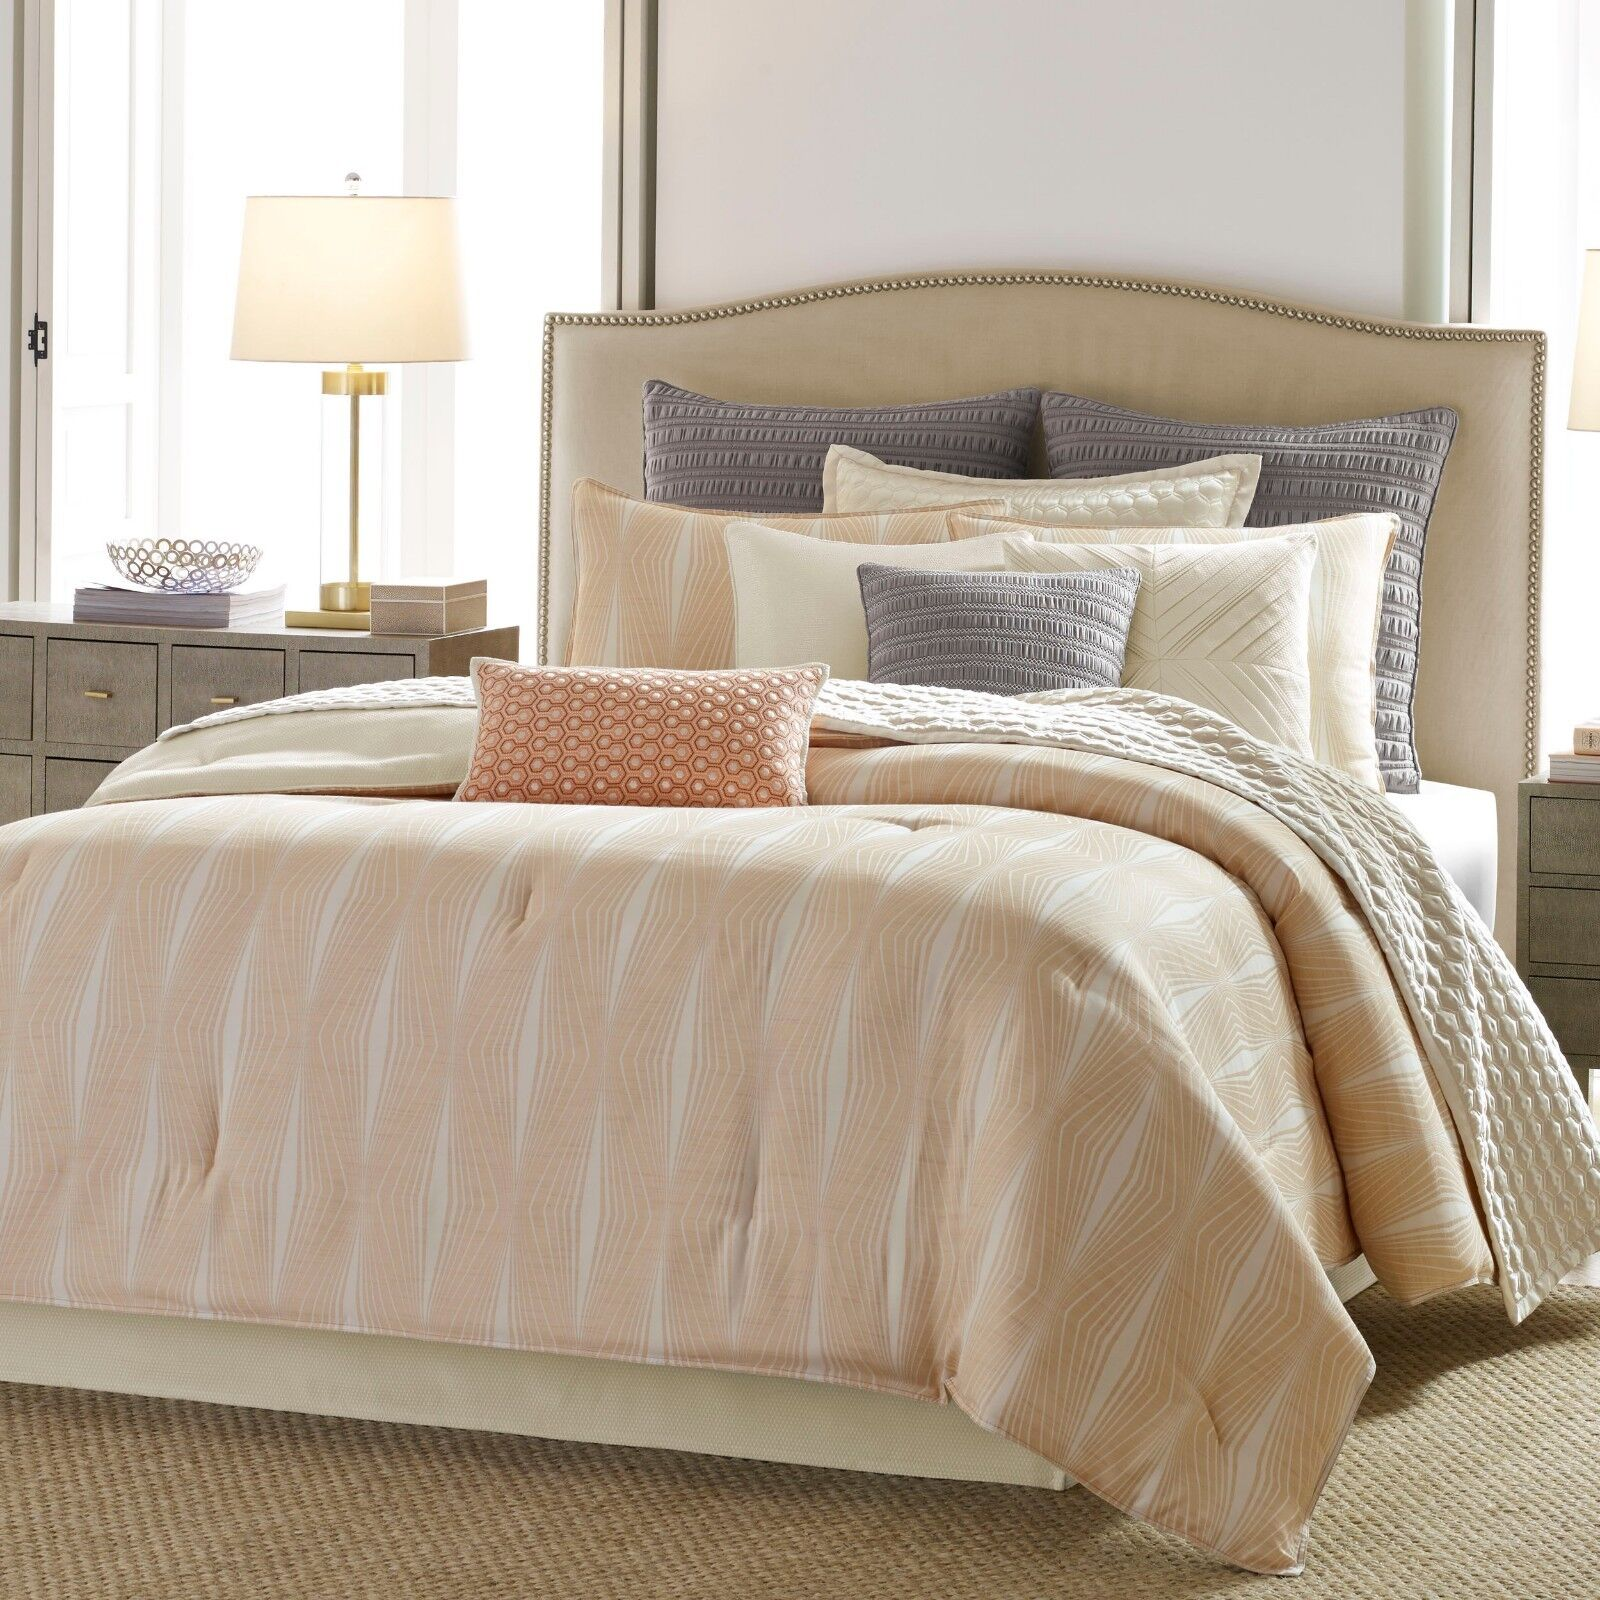 New Candice Olson 4 Piece Jacquard Comforter Sets Queen Variety colors